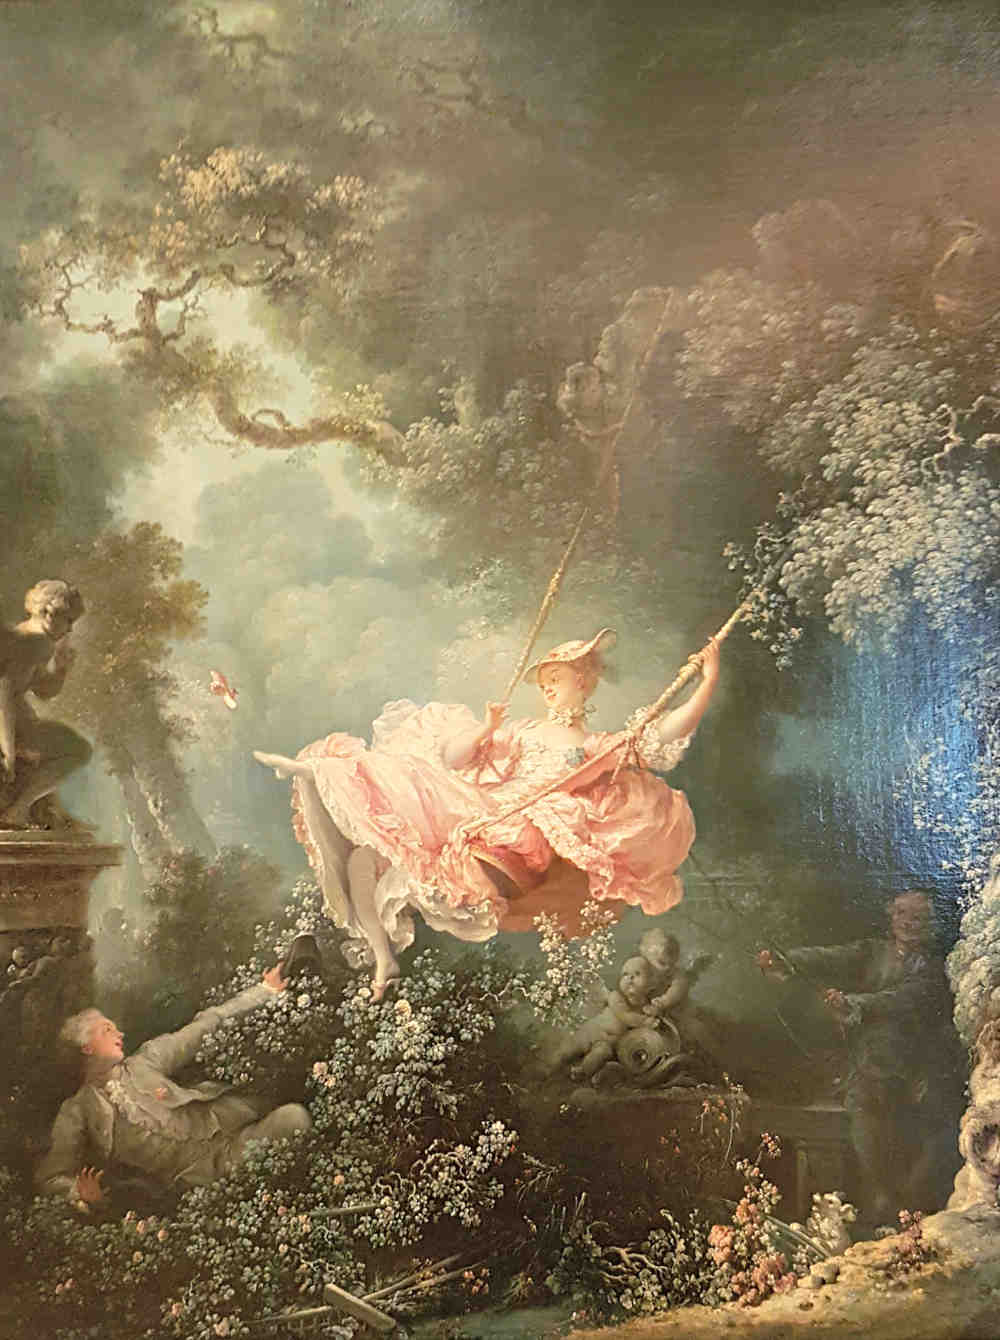 Erotic London, Erotic Art London, Erotic Art in London, Wallace Collection, The Swing, Fragonard